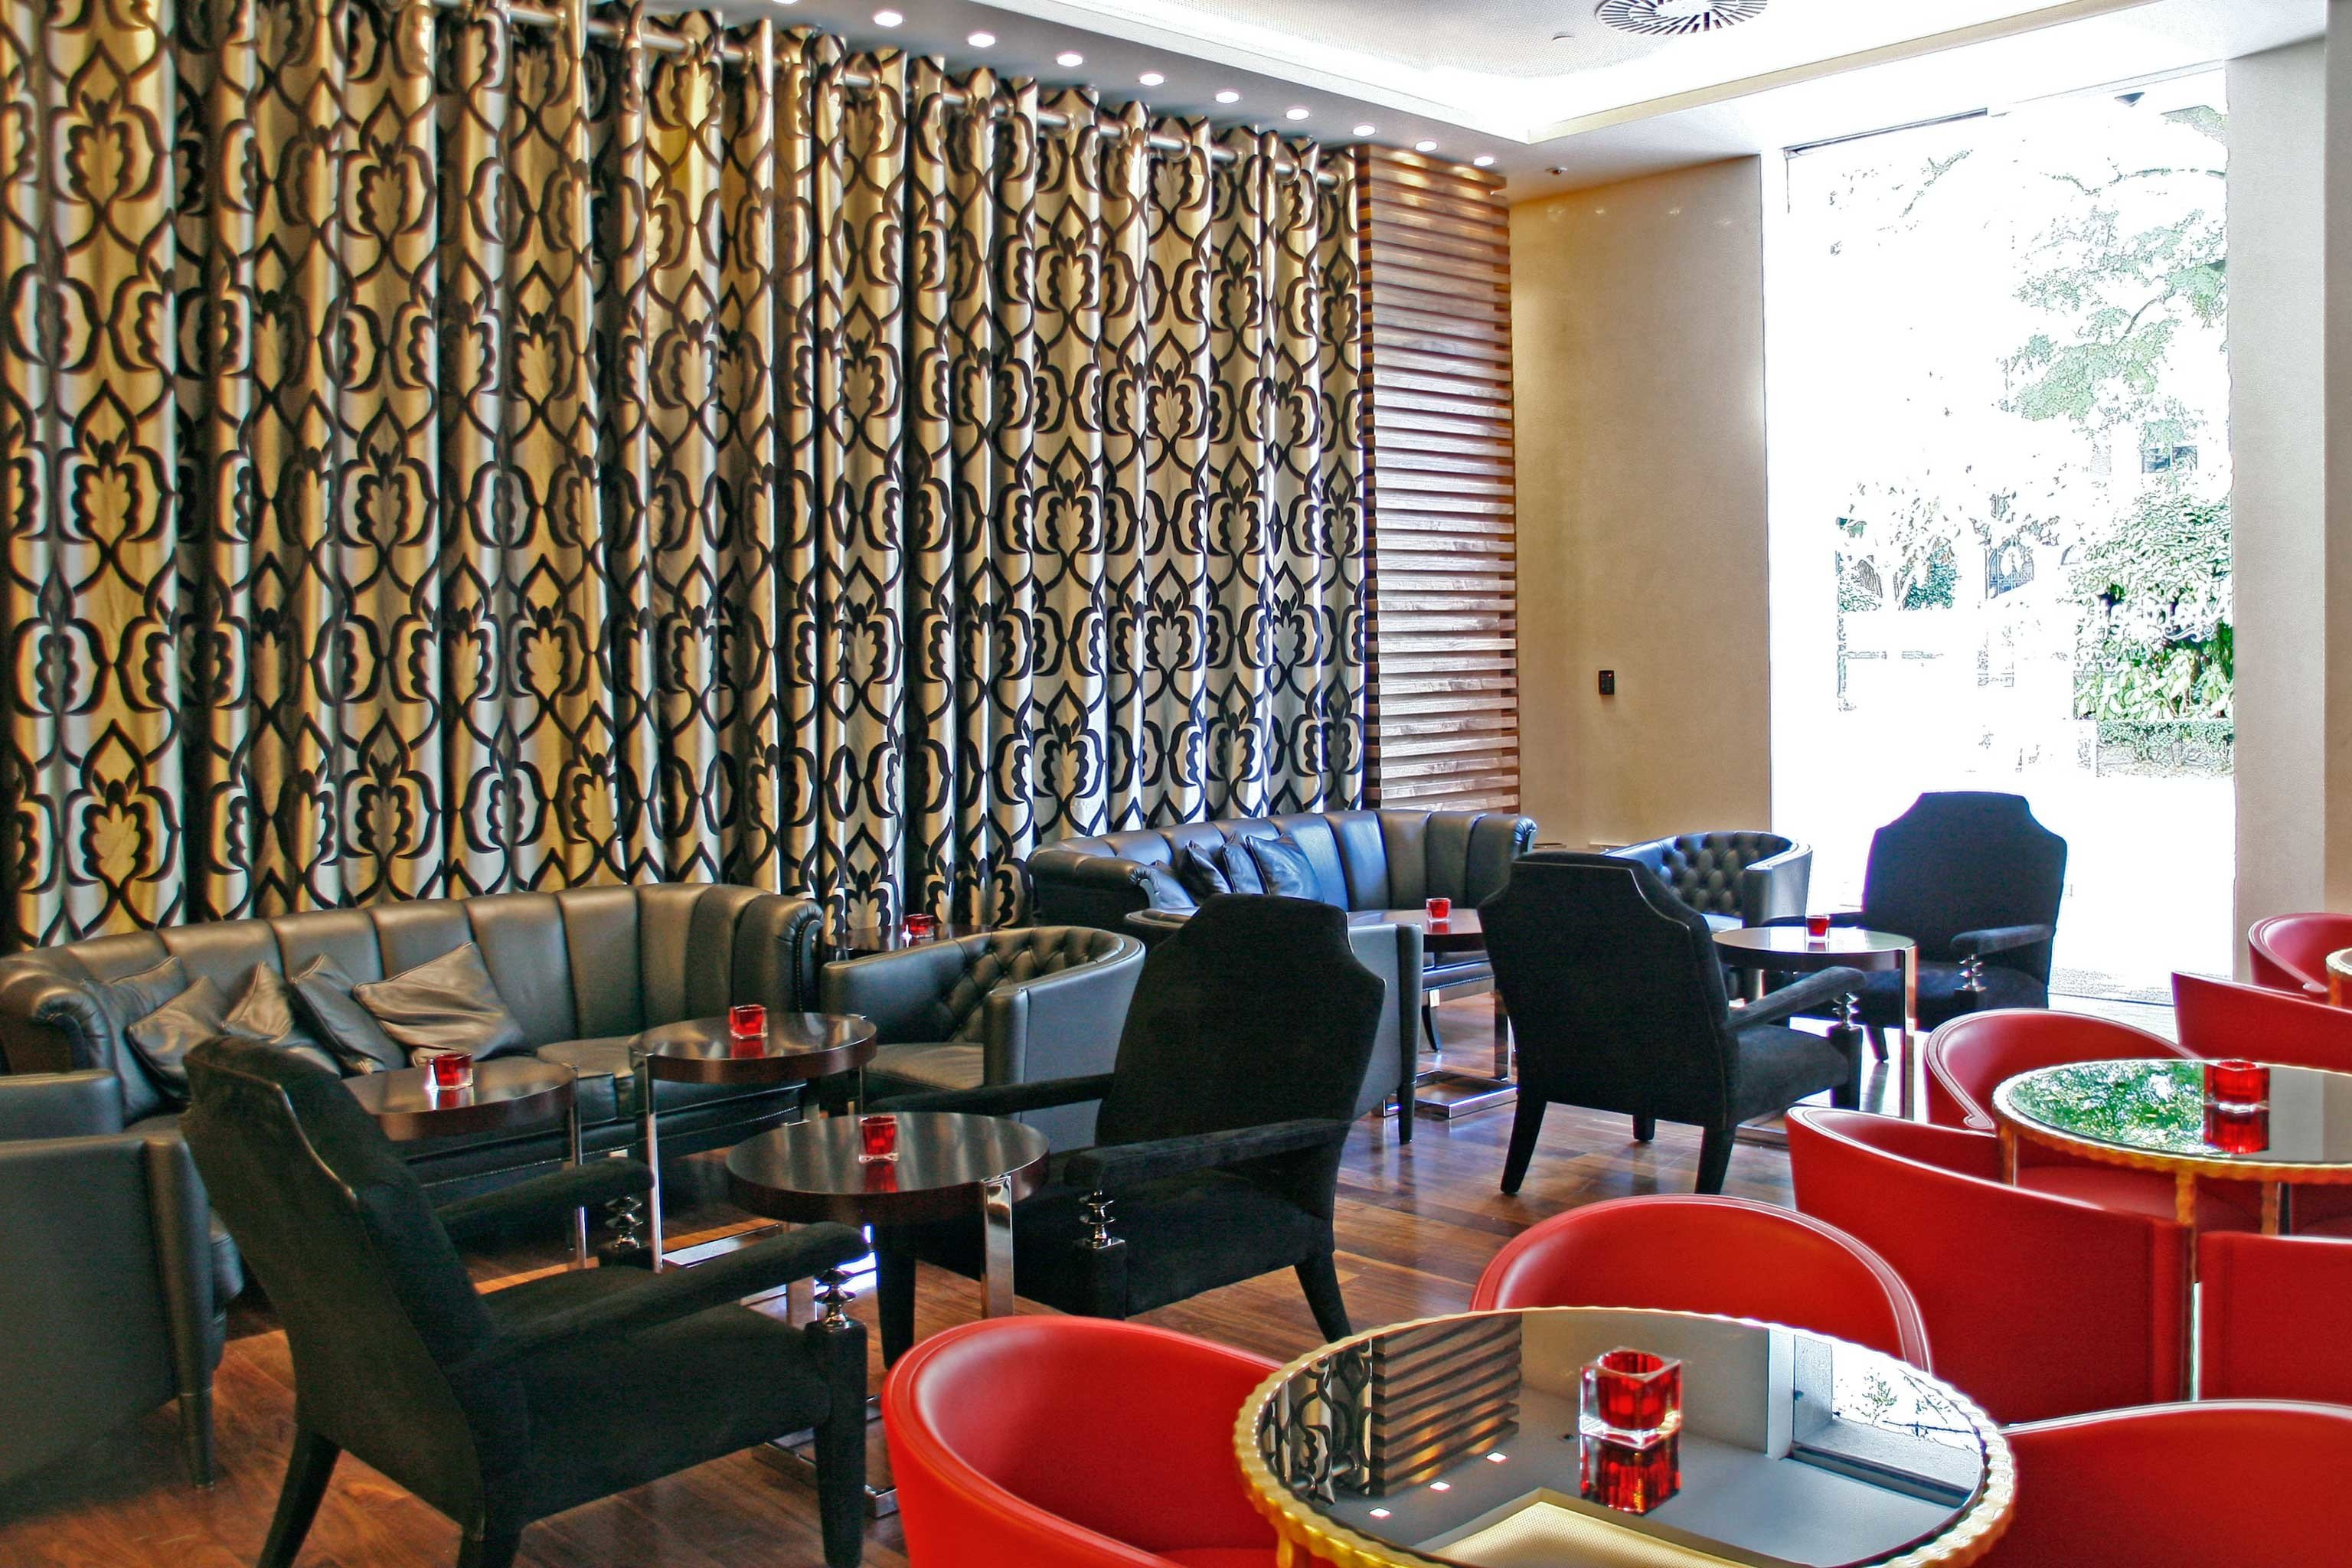 Bar Dining Drink Eat Lounge Luxury chair living room restaurant Lobby cluttered